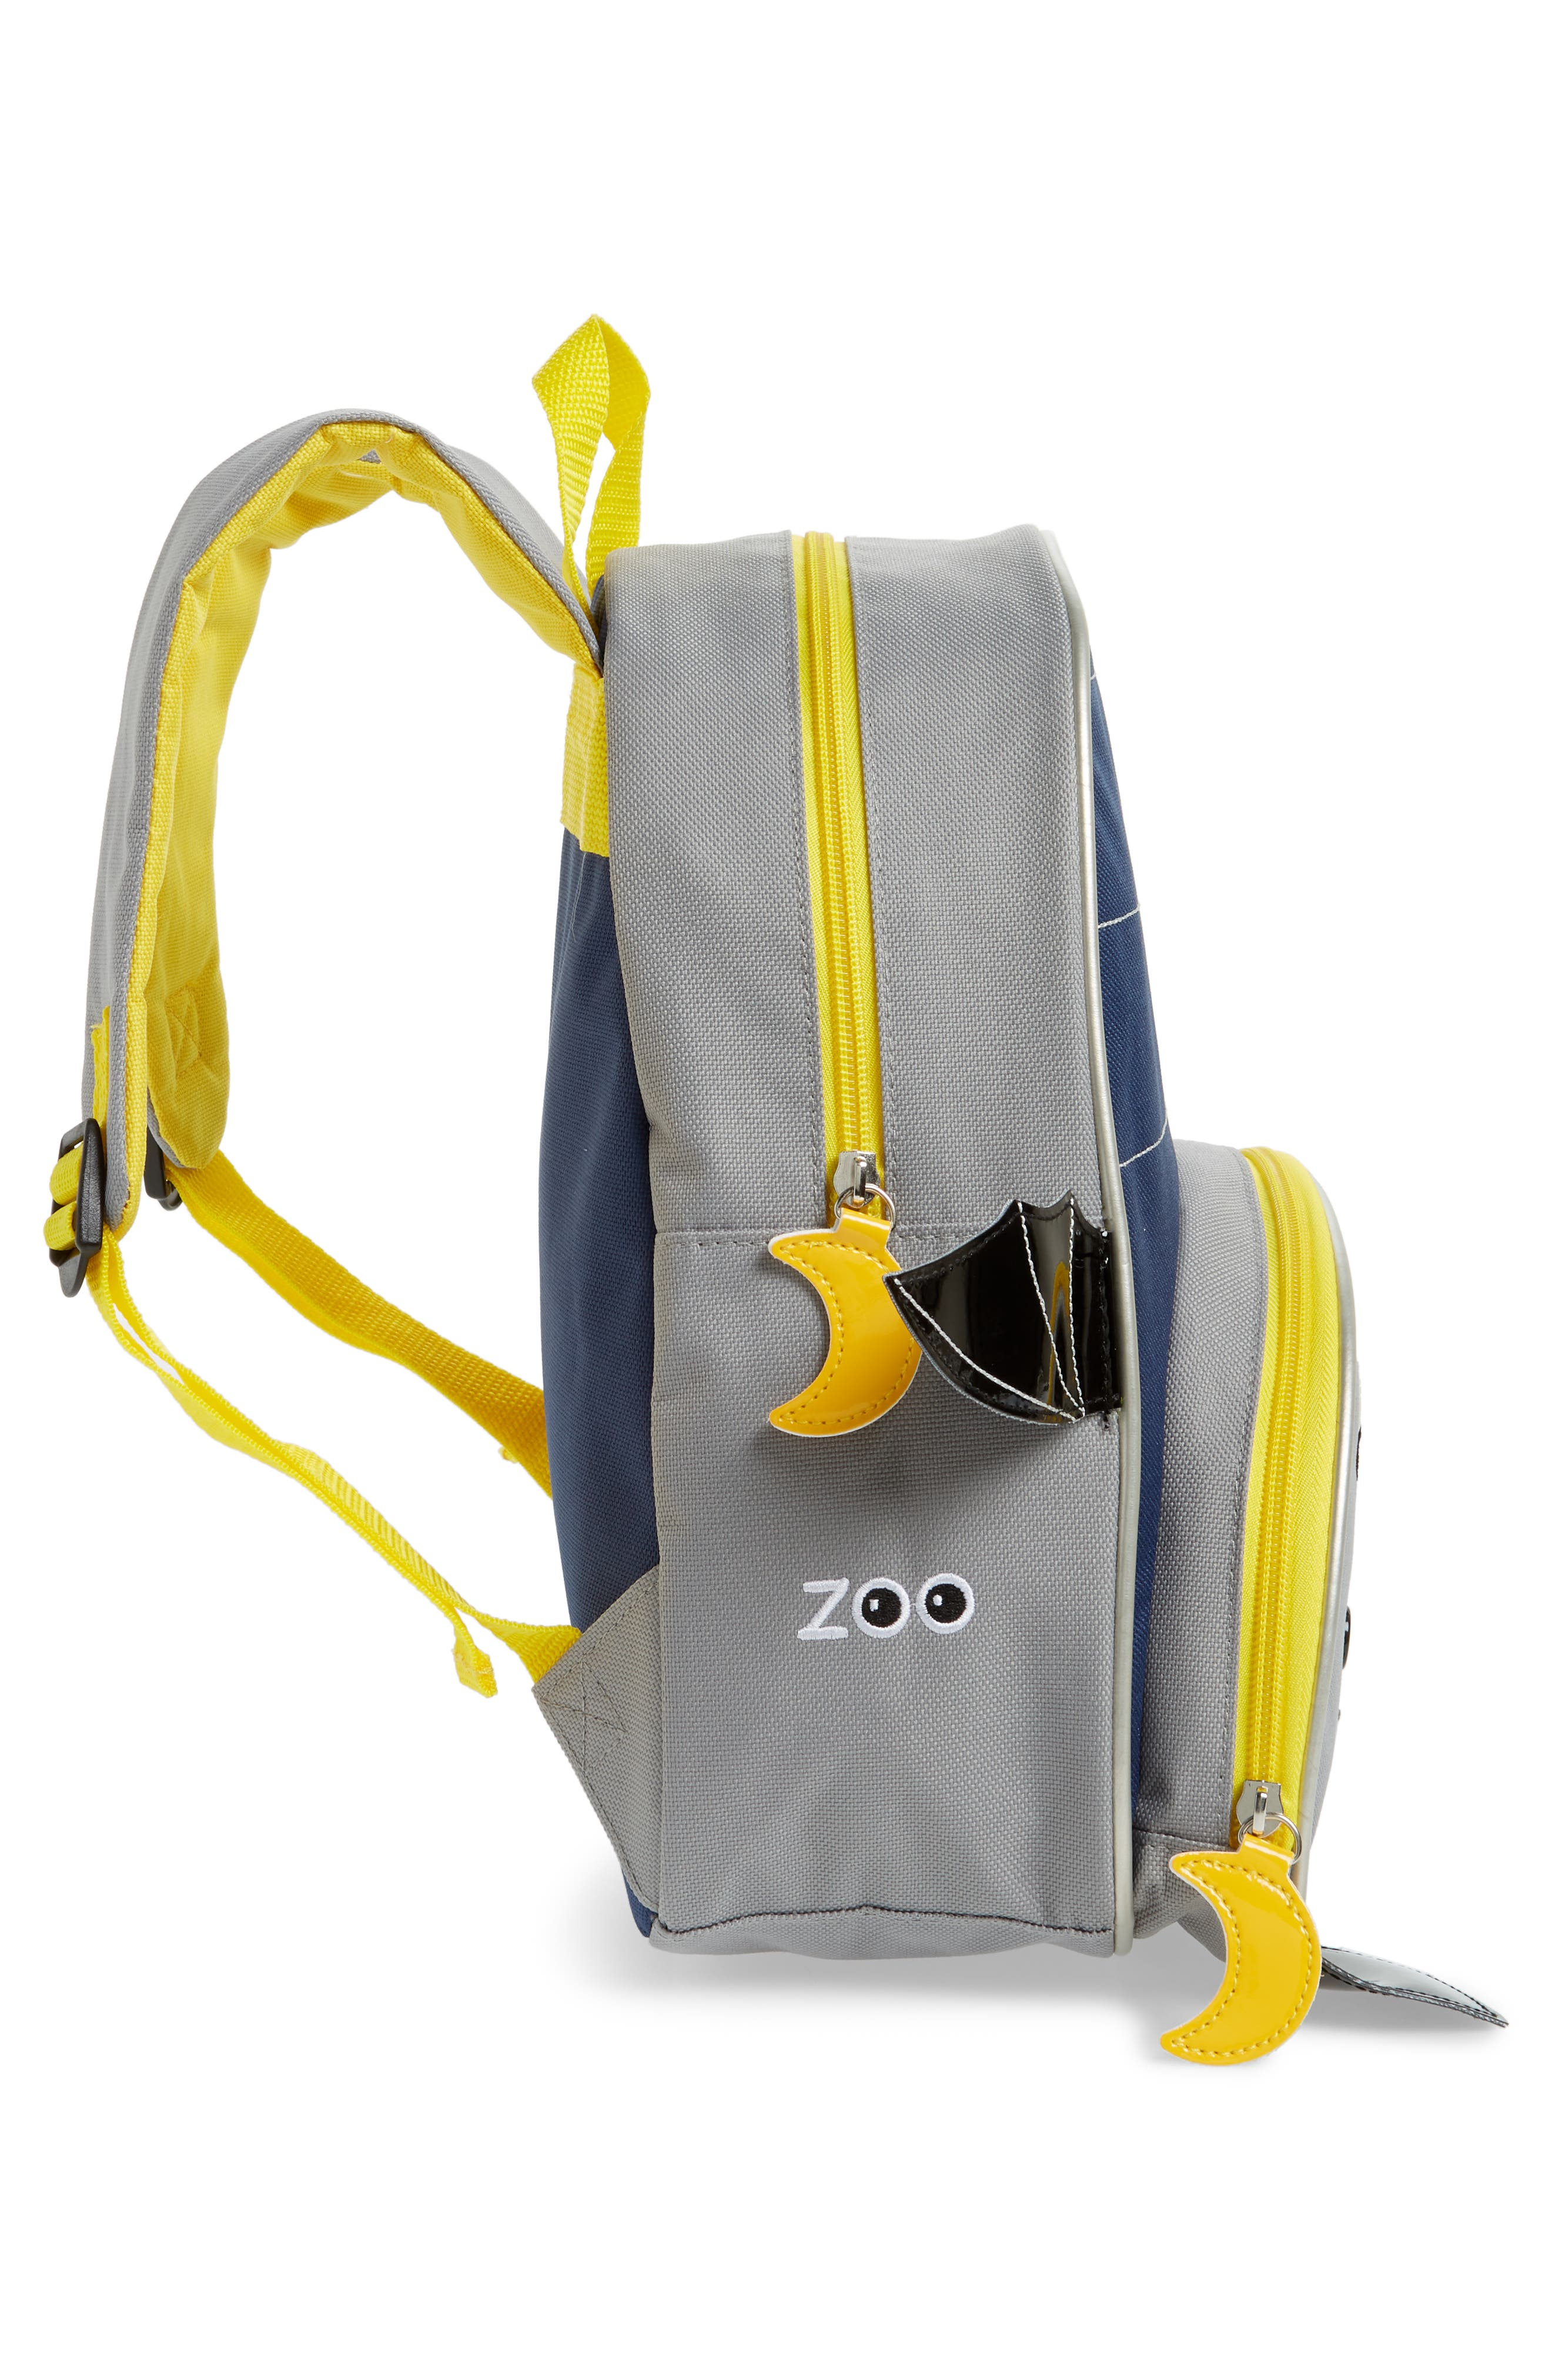 Zoo Pack Backpack,                             Alternate thumbnail 4, color,                             NAVY BLUE